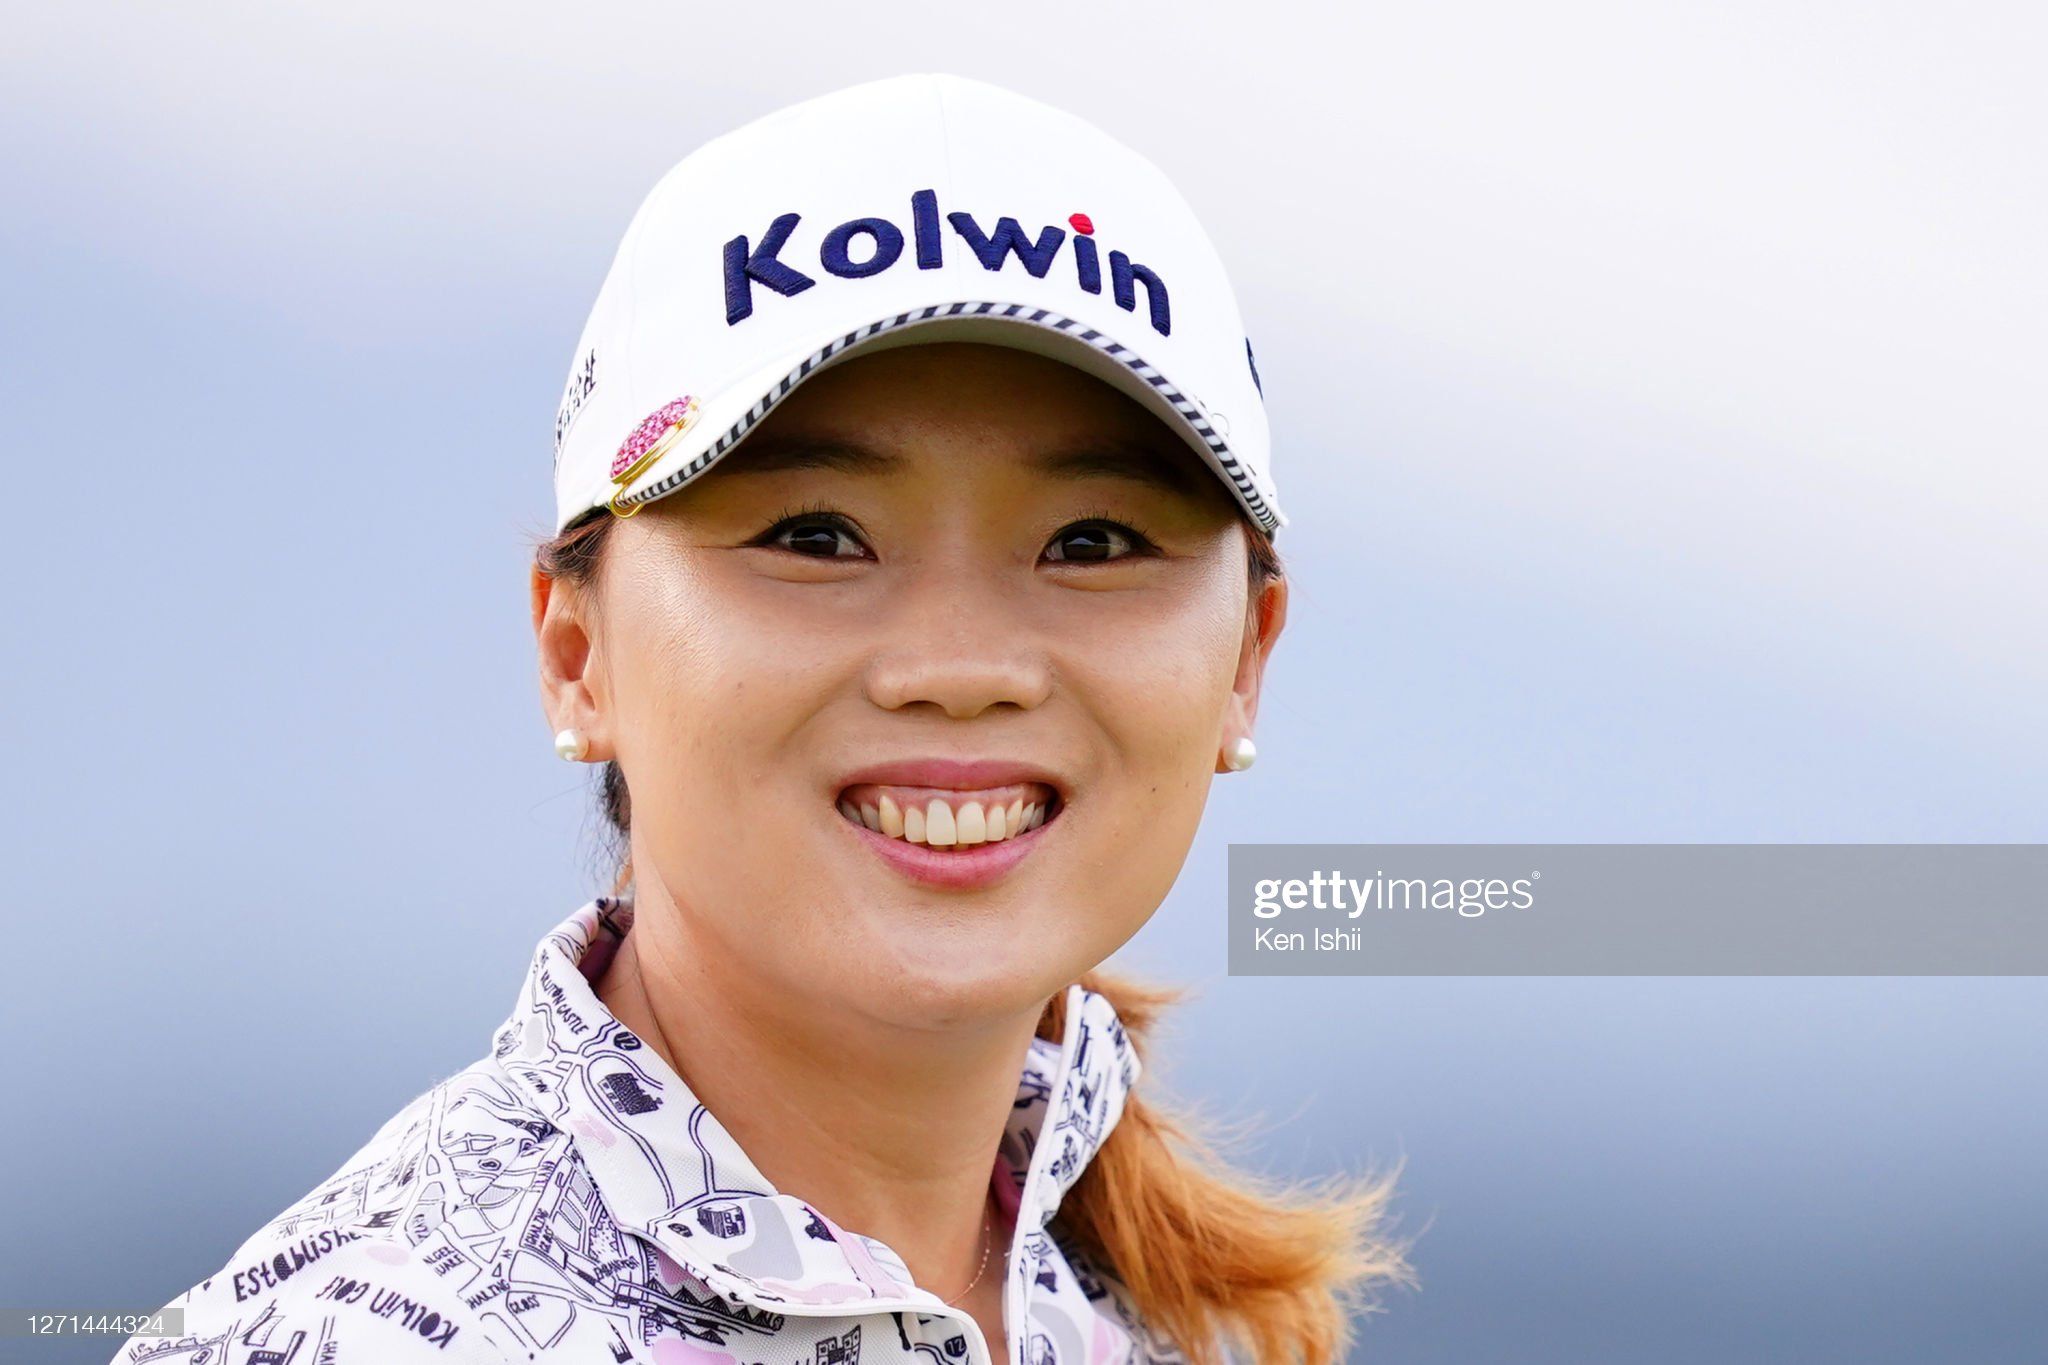 https://media.gettyimages.com/photos/nari-lee-of-south-korea-is-seen-during-the-practice-round-ahead-of-picture-id1271444324?s=2048x2048